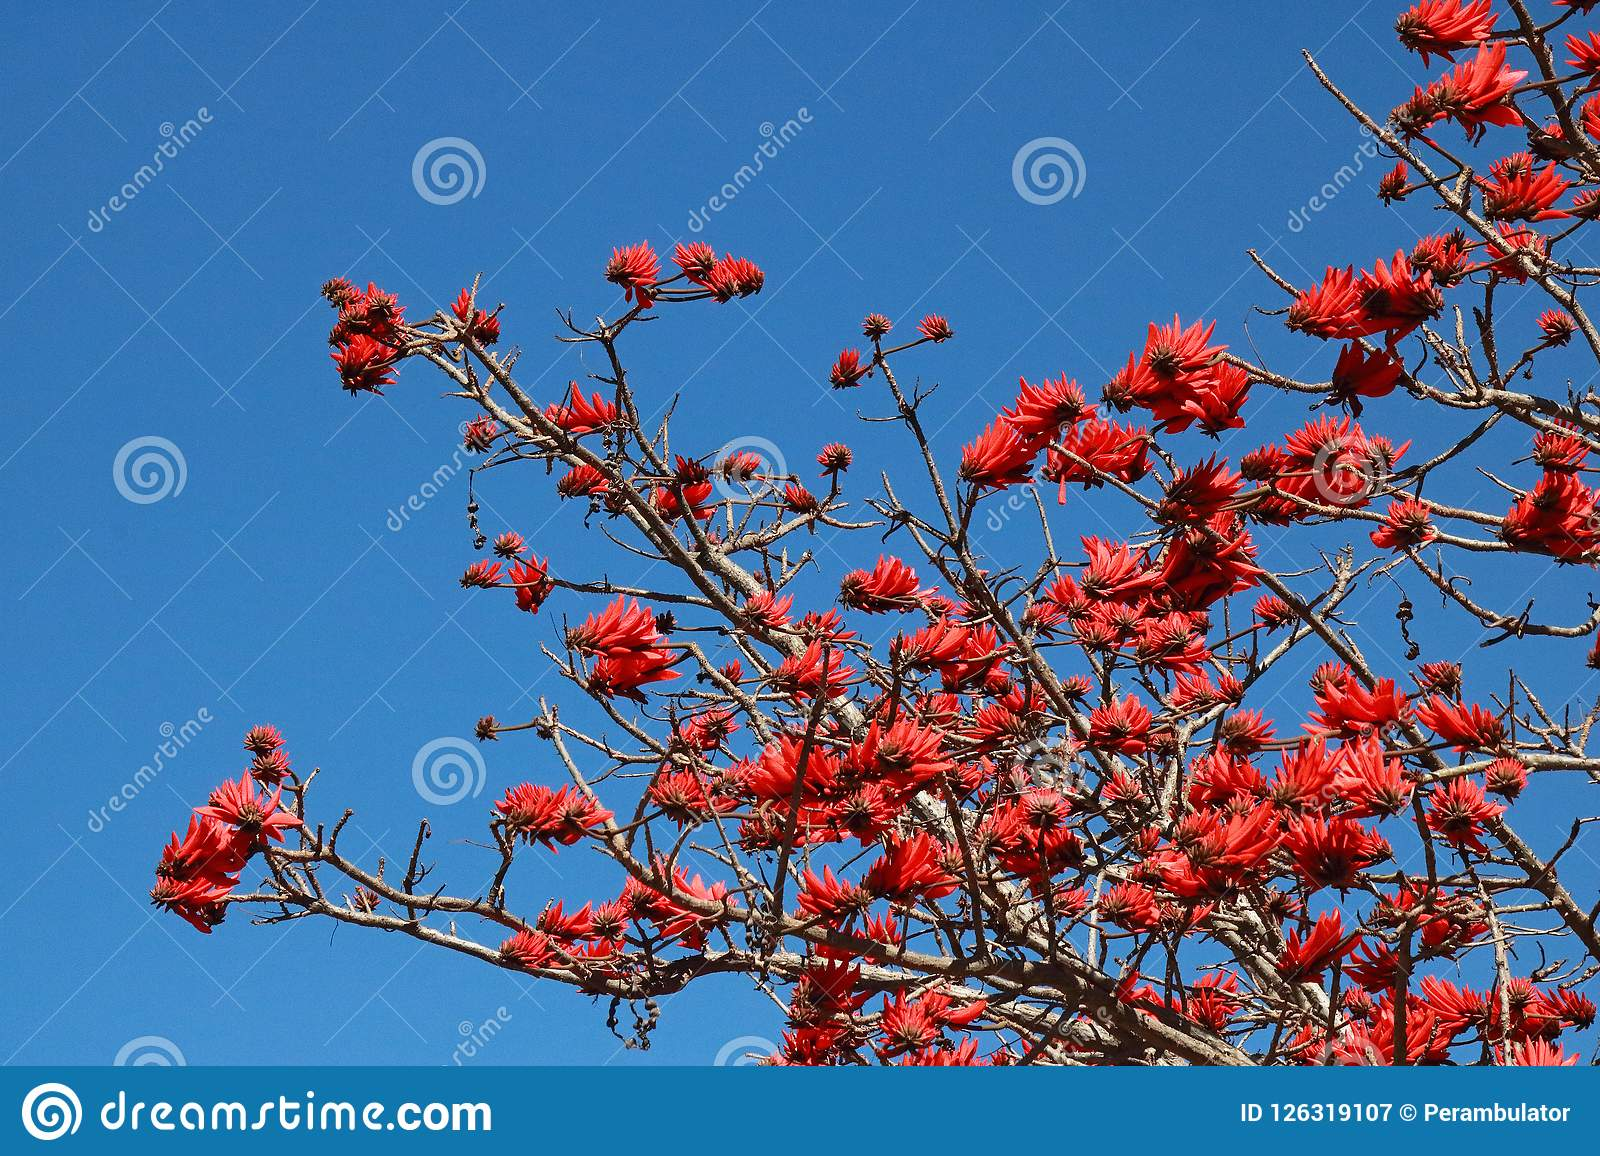 View of red flowers blooming on an Erythrina tree against a blue sky.